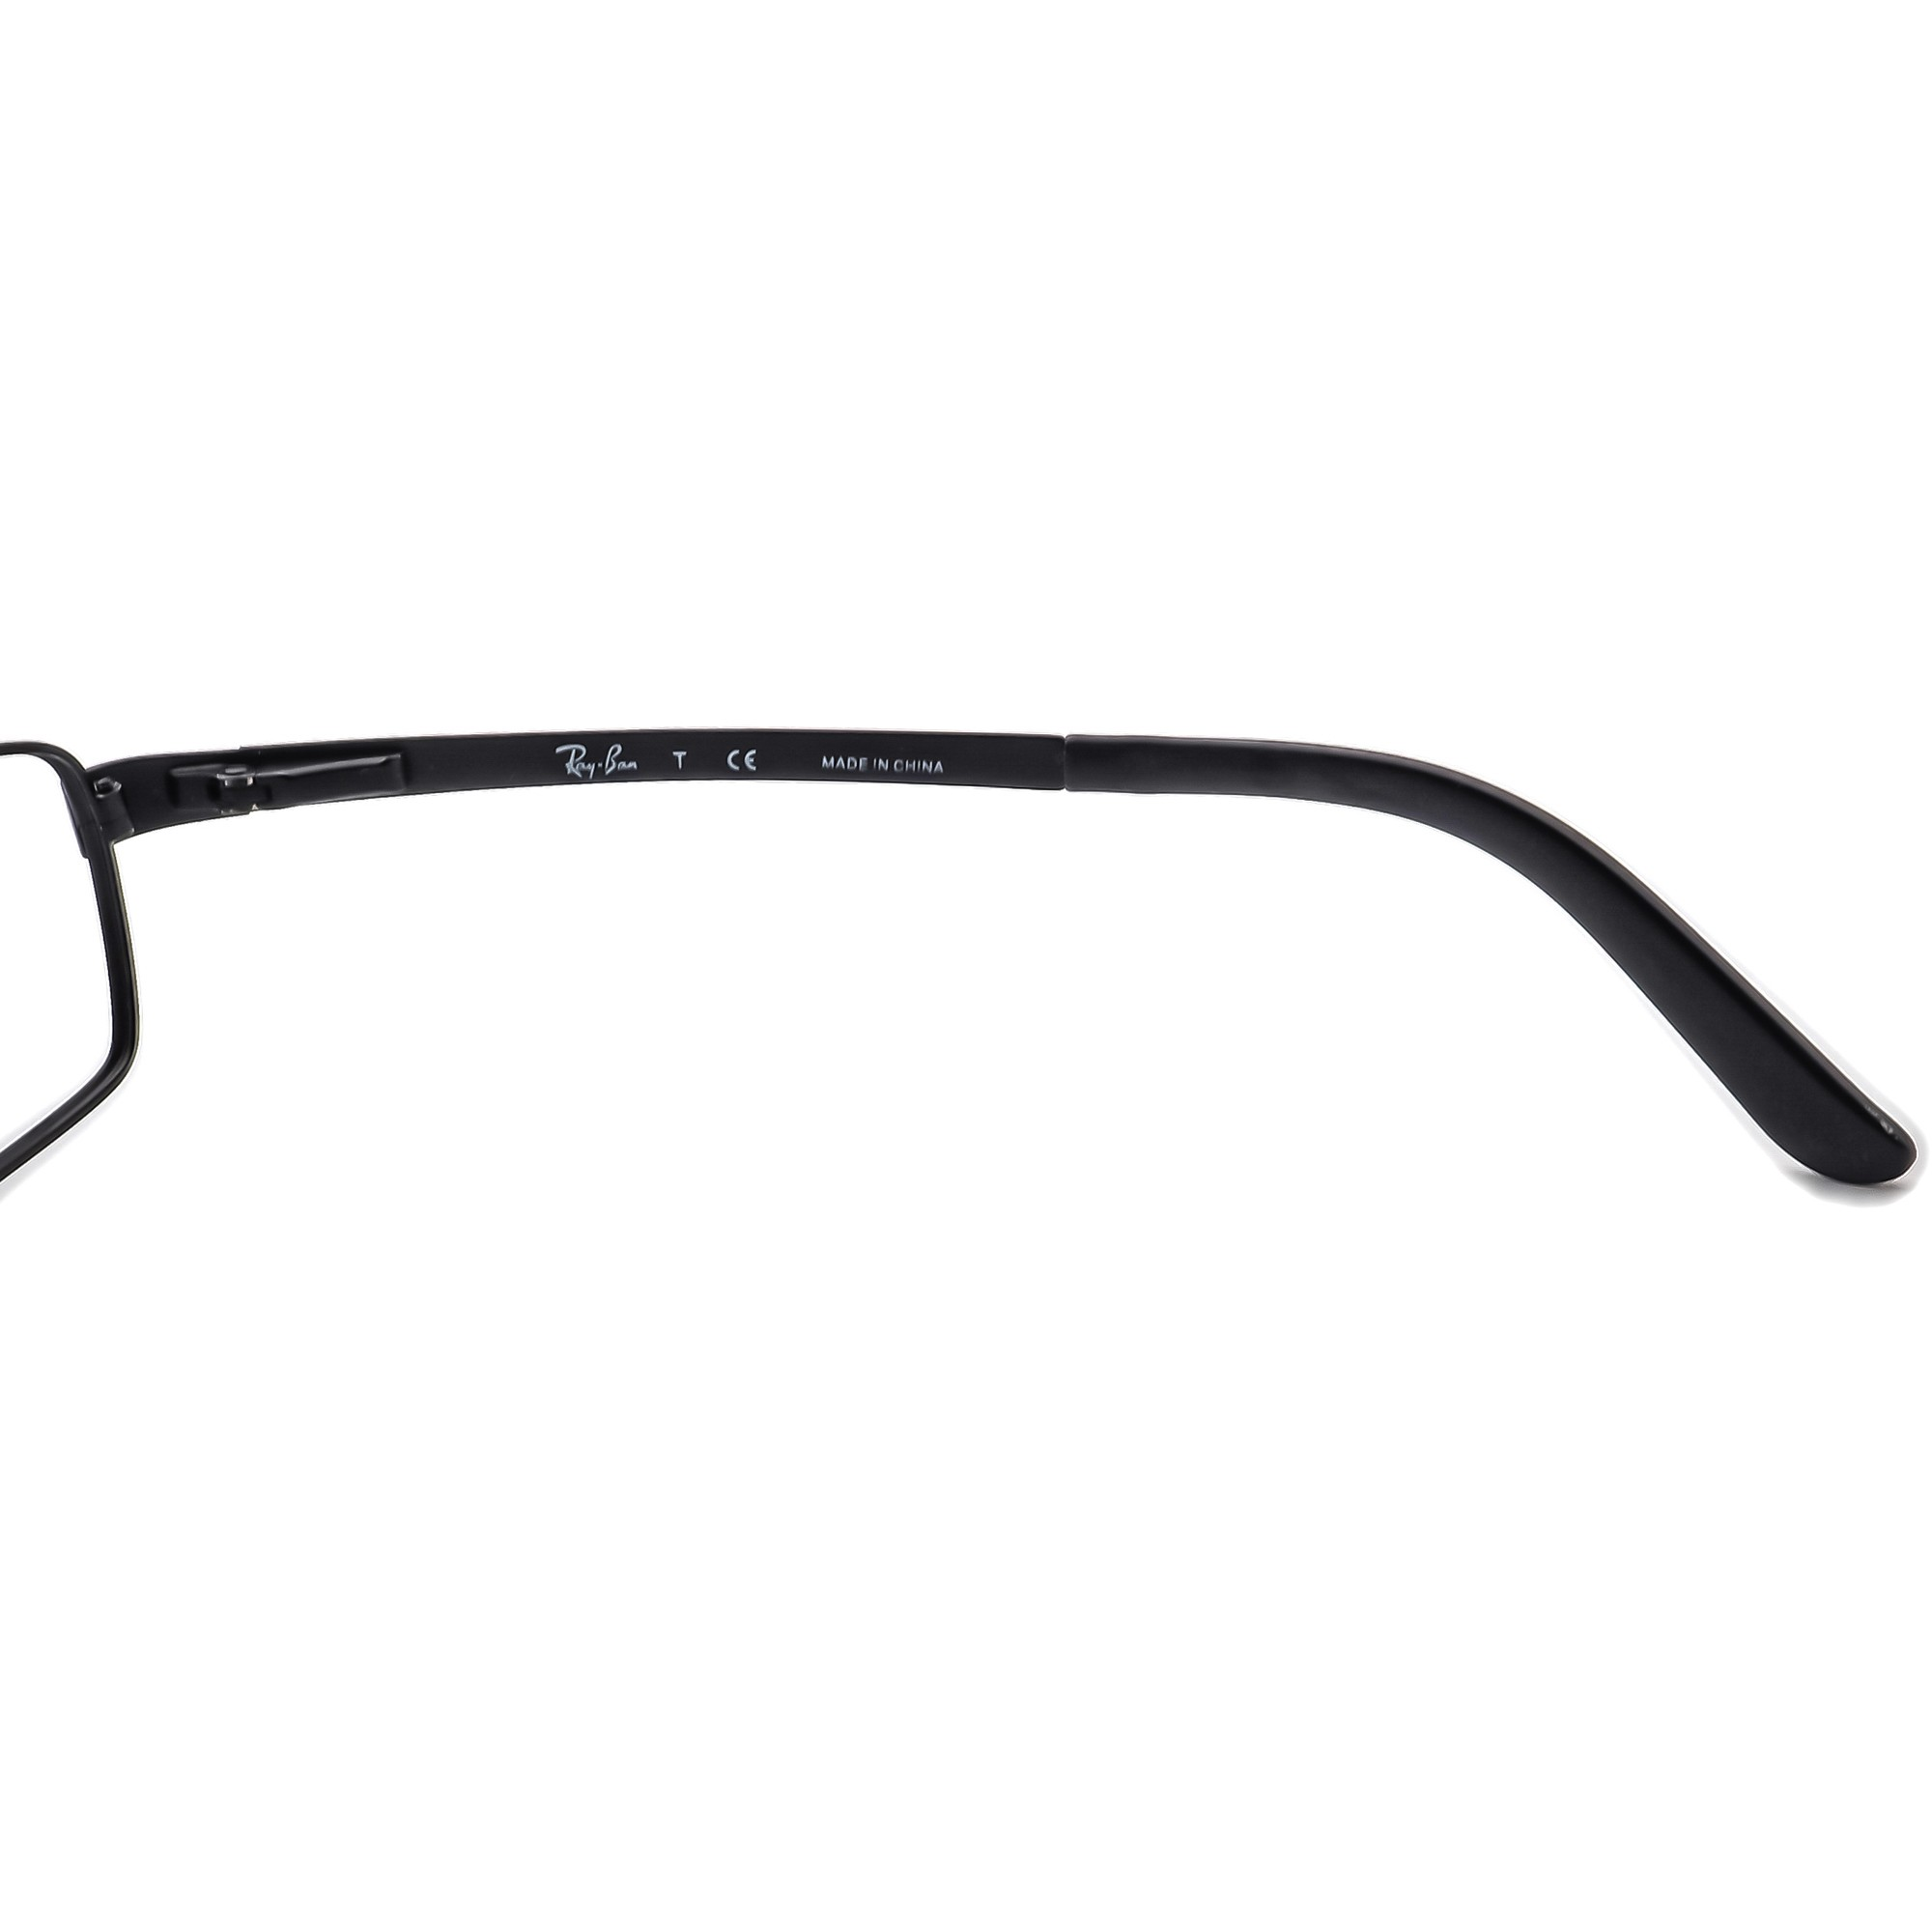 Ray-Ban RB 3194 006 Sunglasses Frame Only